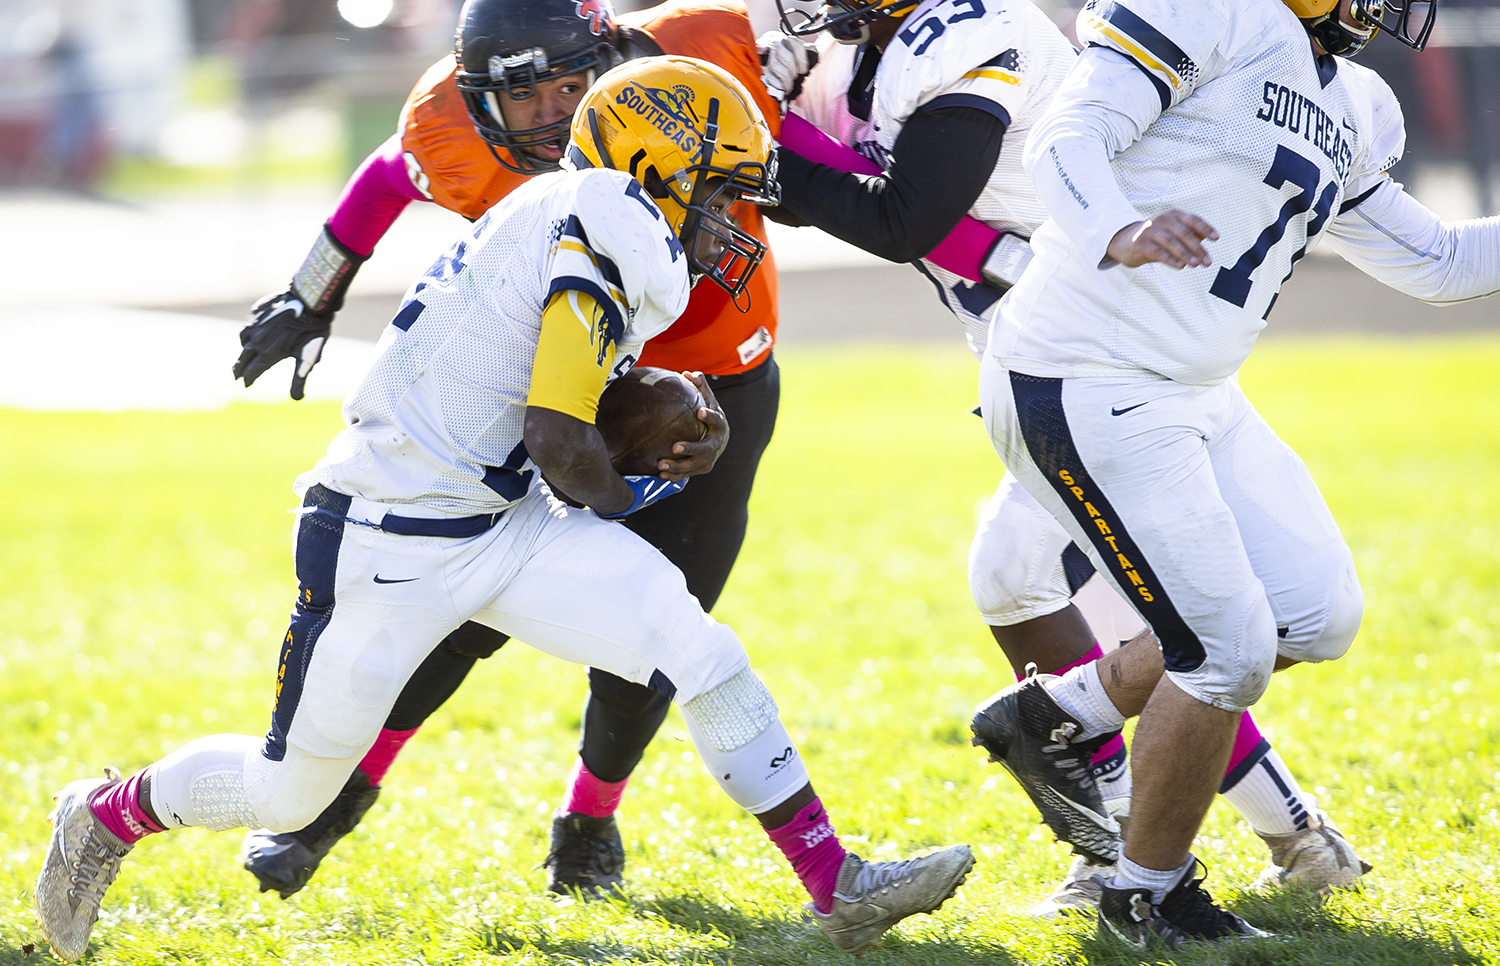 Southeast's Antron Bevly breaks away from the Lanphier defense at Memorial Stadium Saturday, Oct. 20, 2018  in Springfield, Ill. [Rich Saal/The State Journal-Register]